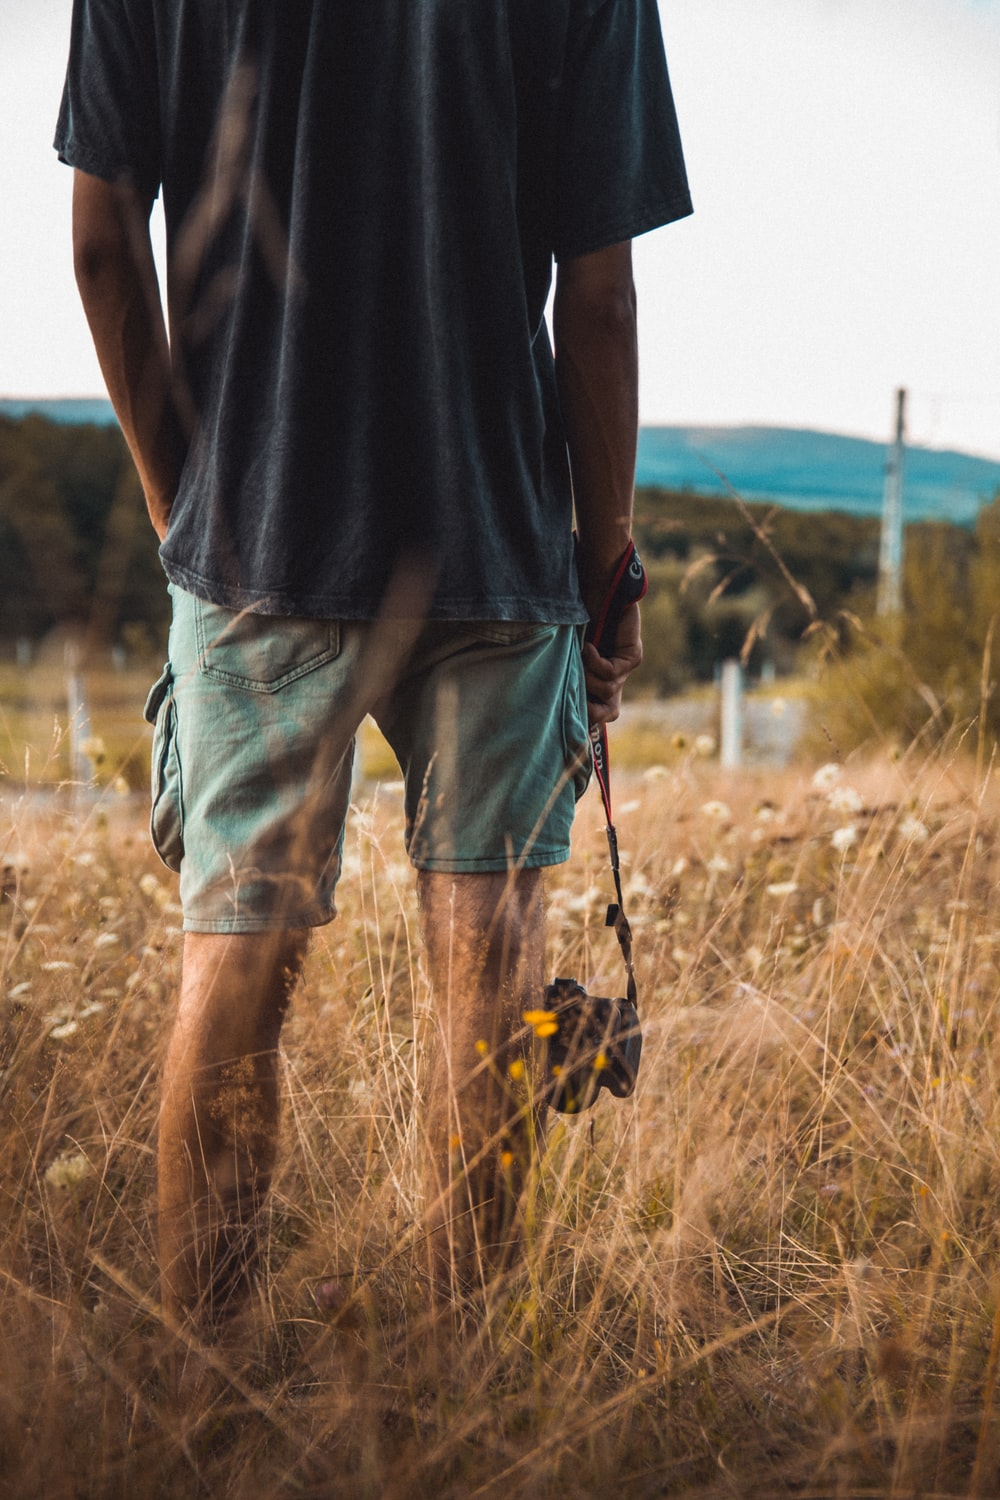 person wearing green shorts close-up photography